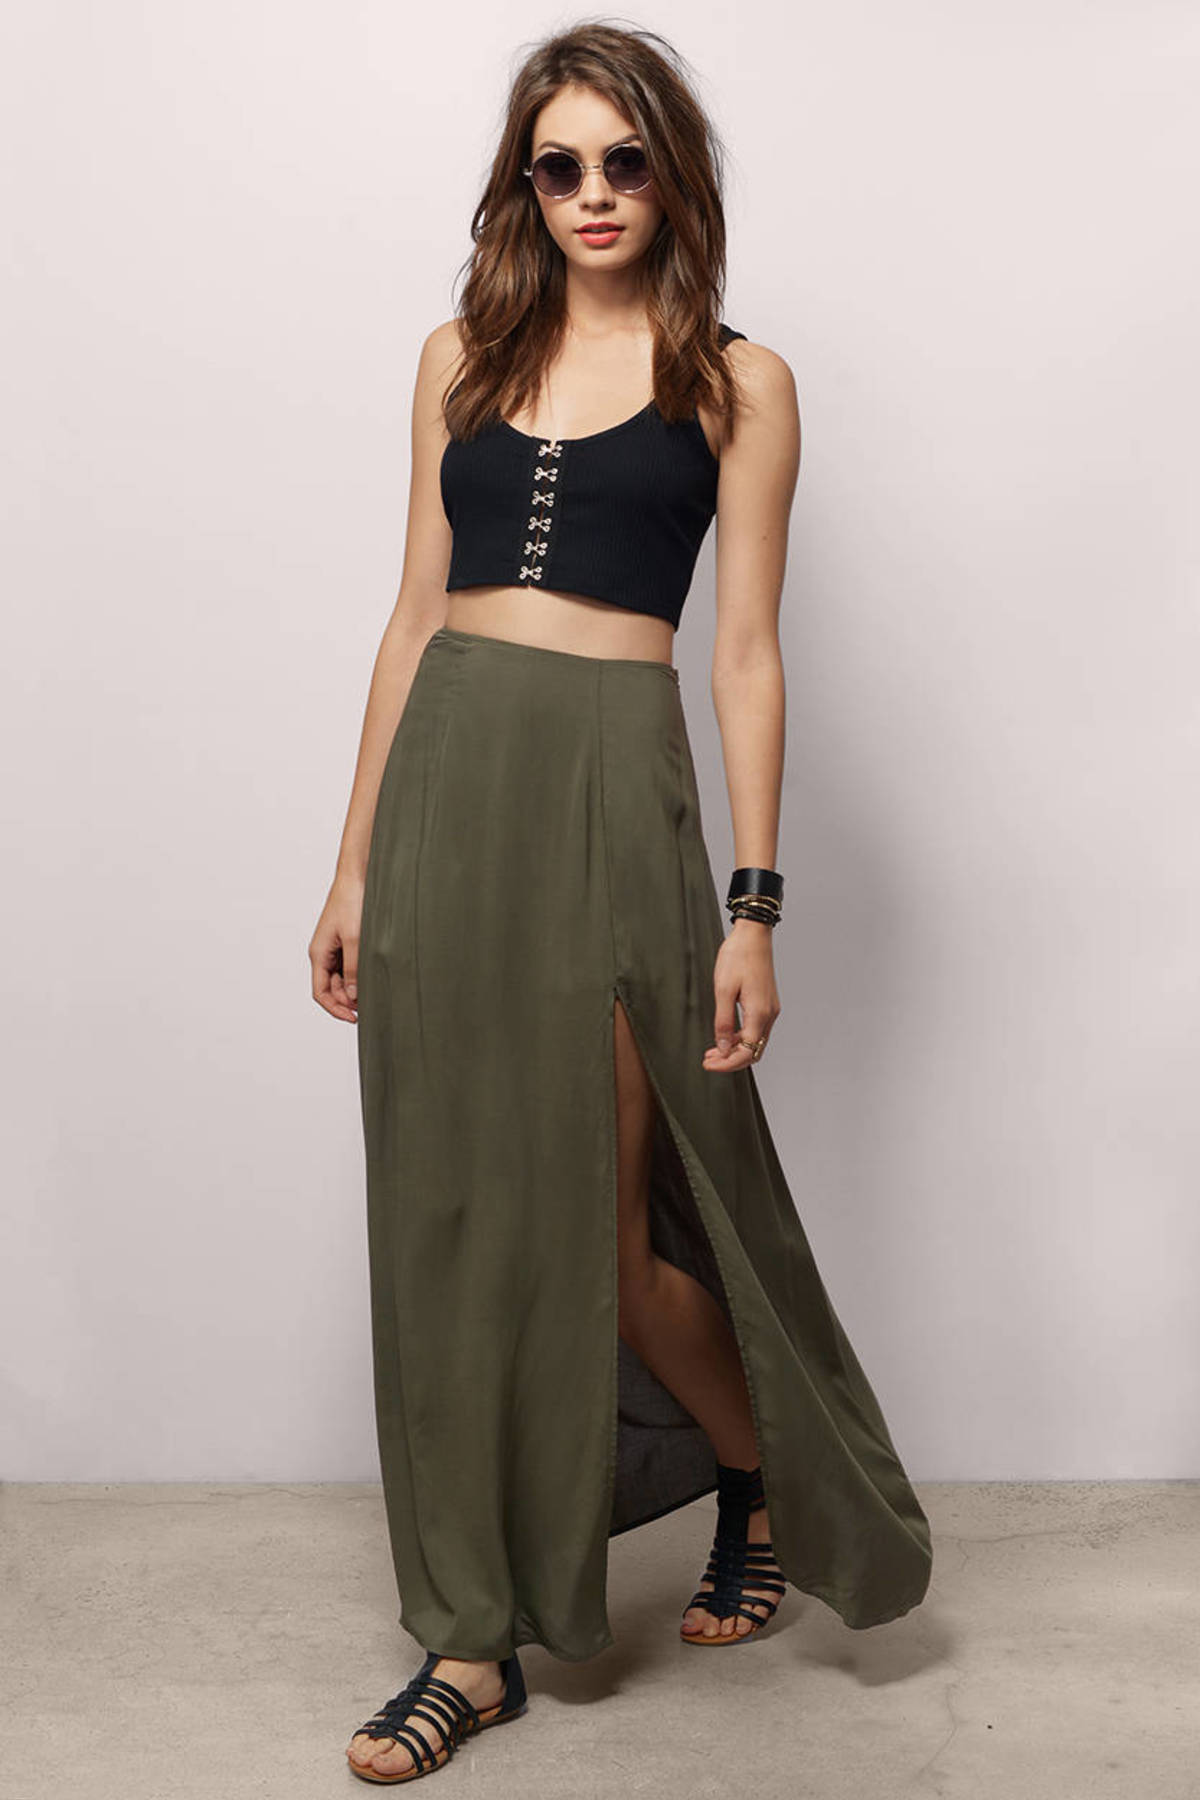 Maxi Skirt with Slit | Dress images